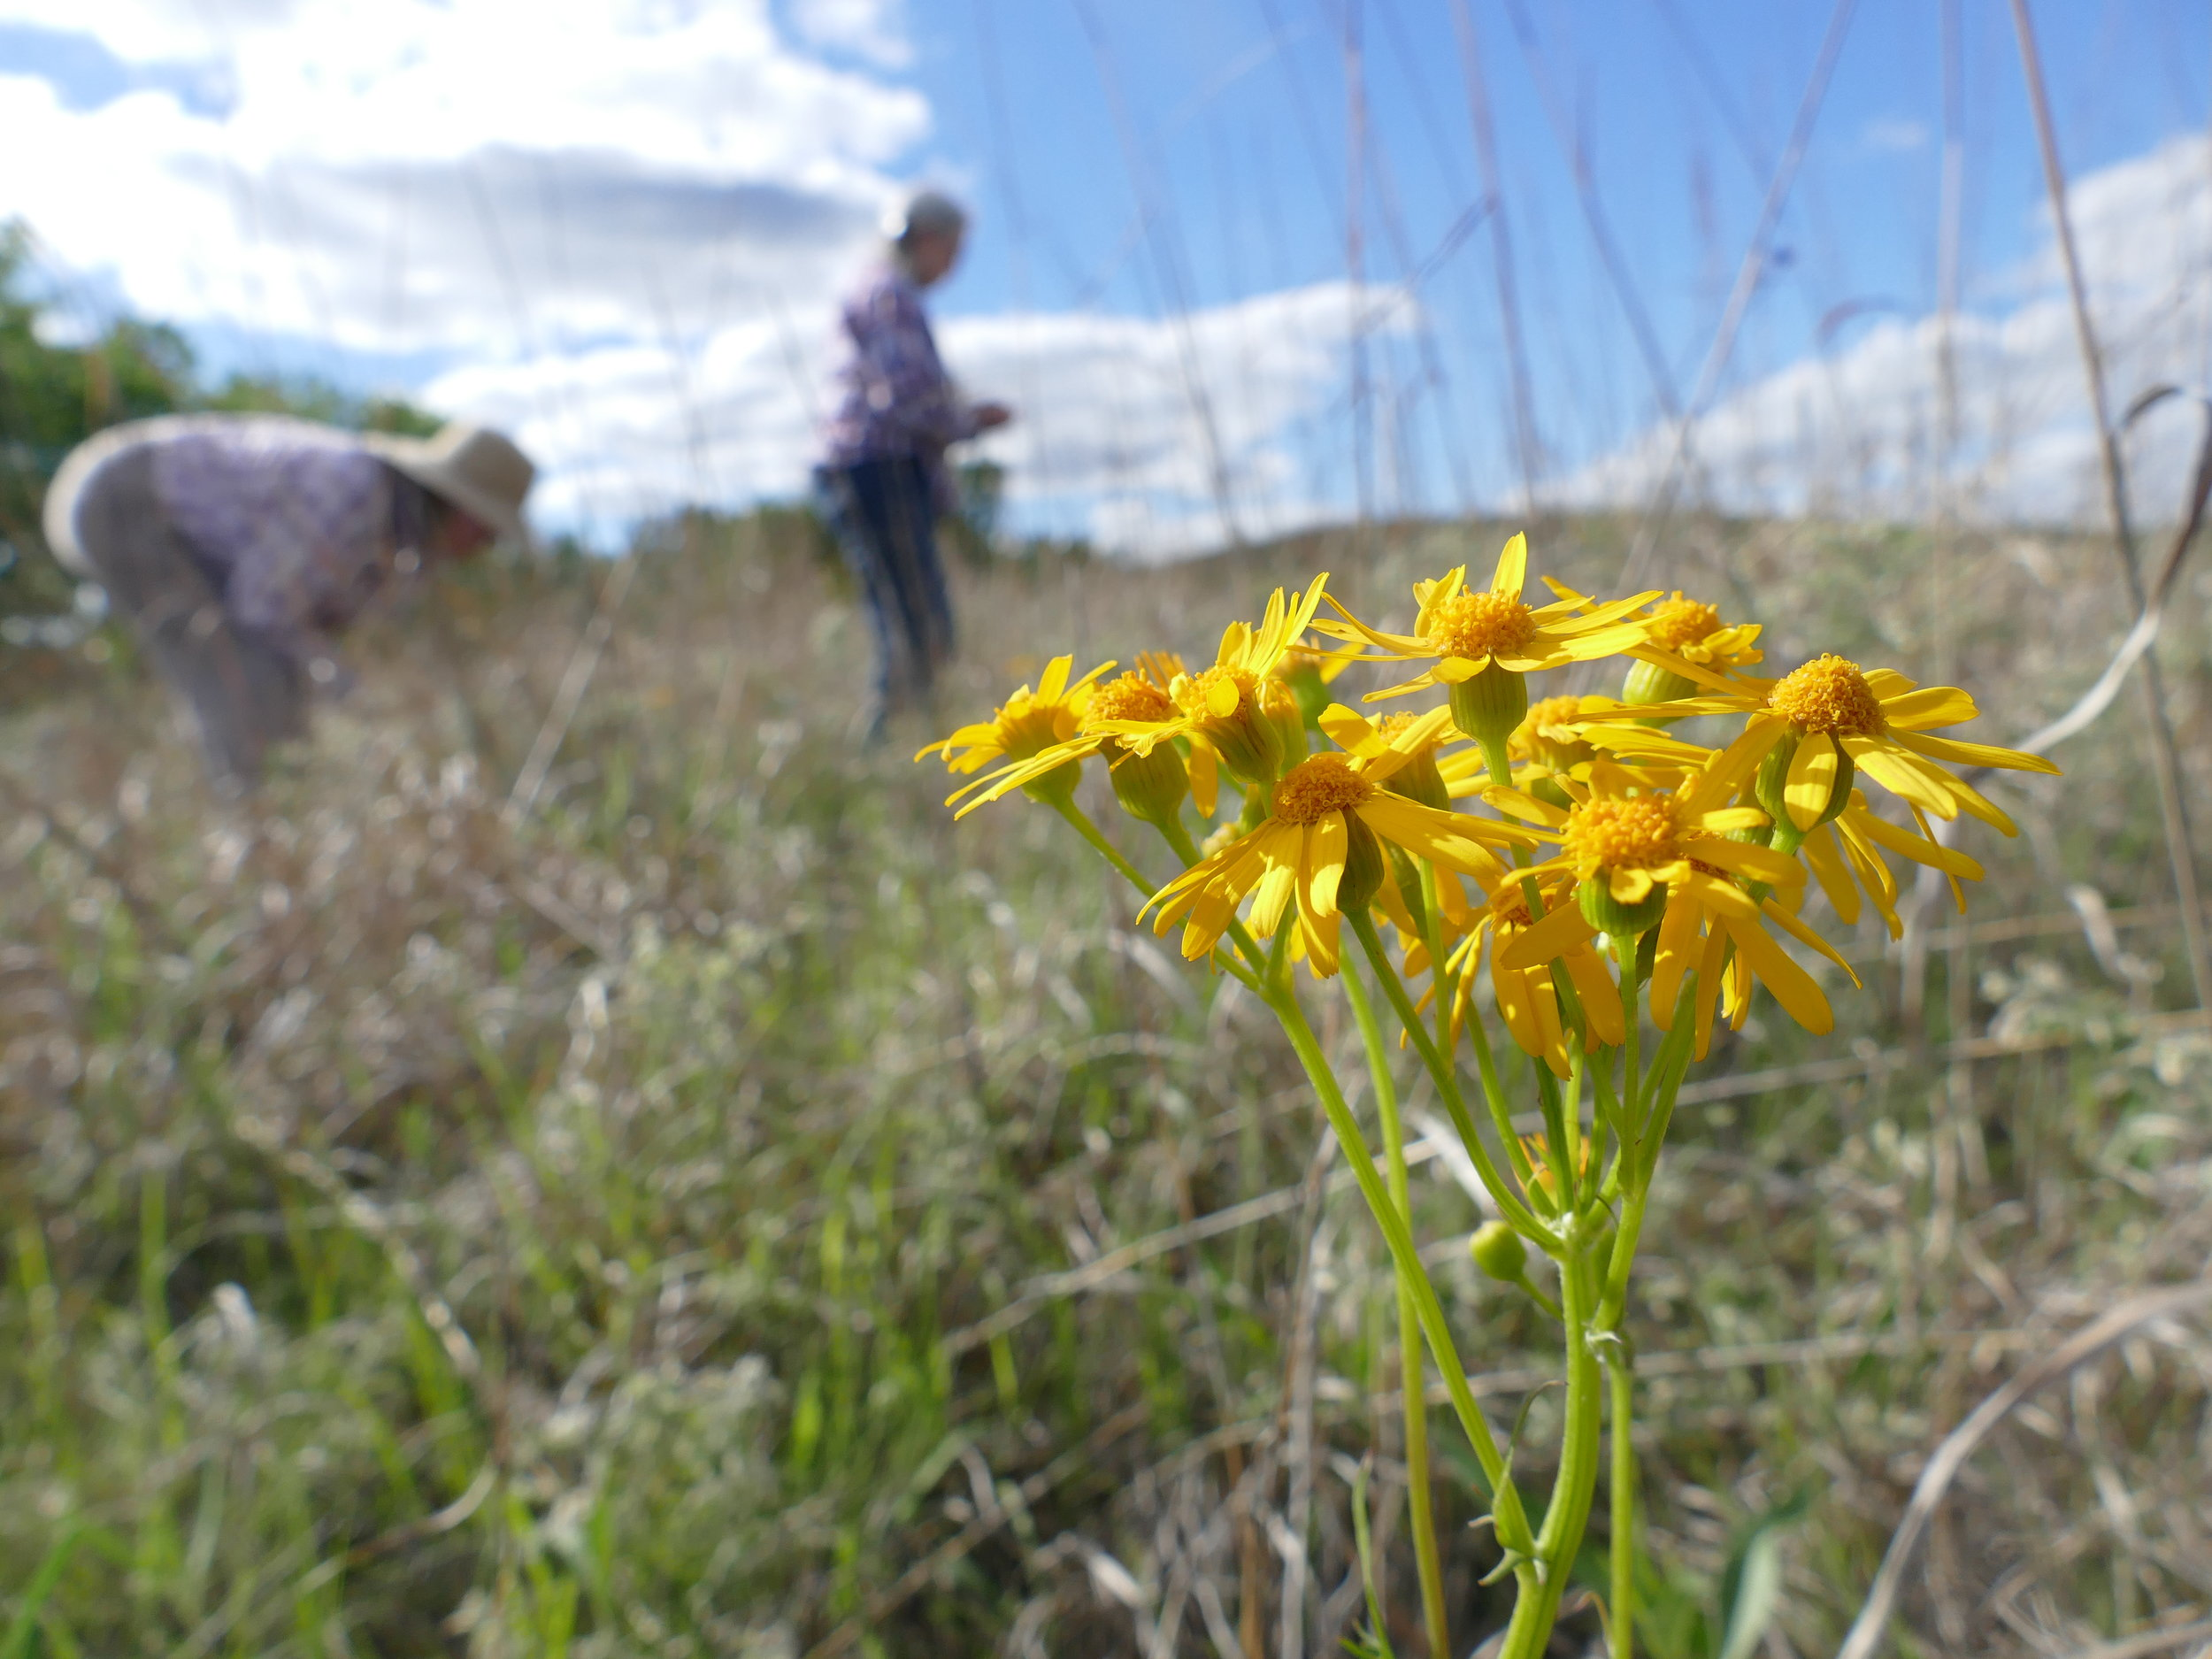 In Sioux City, I was given a tour of the city's prairie, their bike path, and a few points of interest. What was most inspiring was meeting the folks giving the tours, who work tiredlessly to leave the planet healthier for those to come.